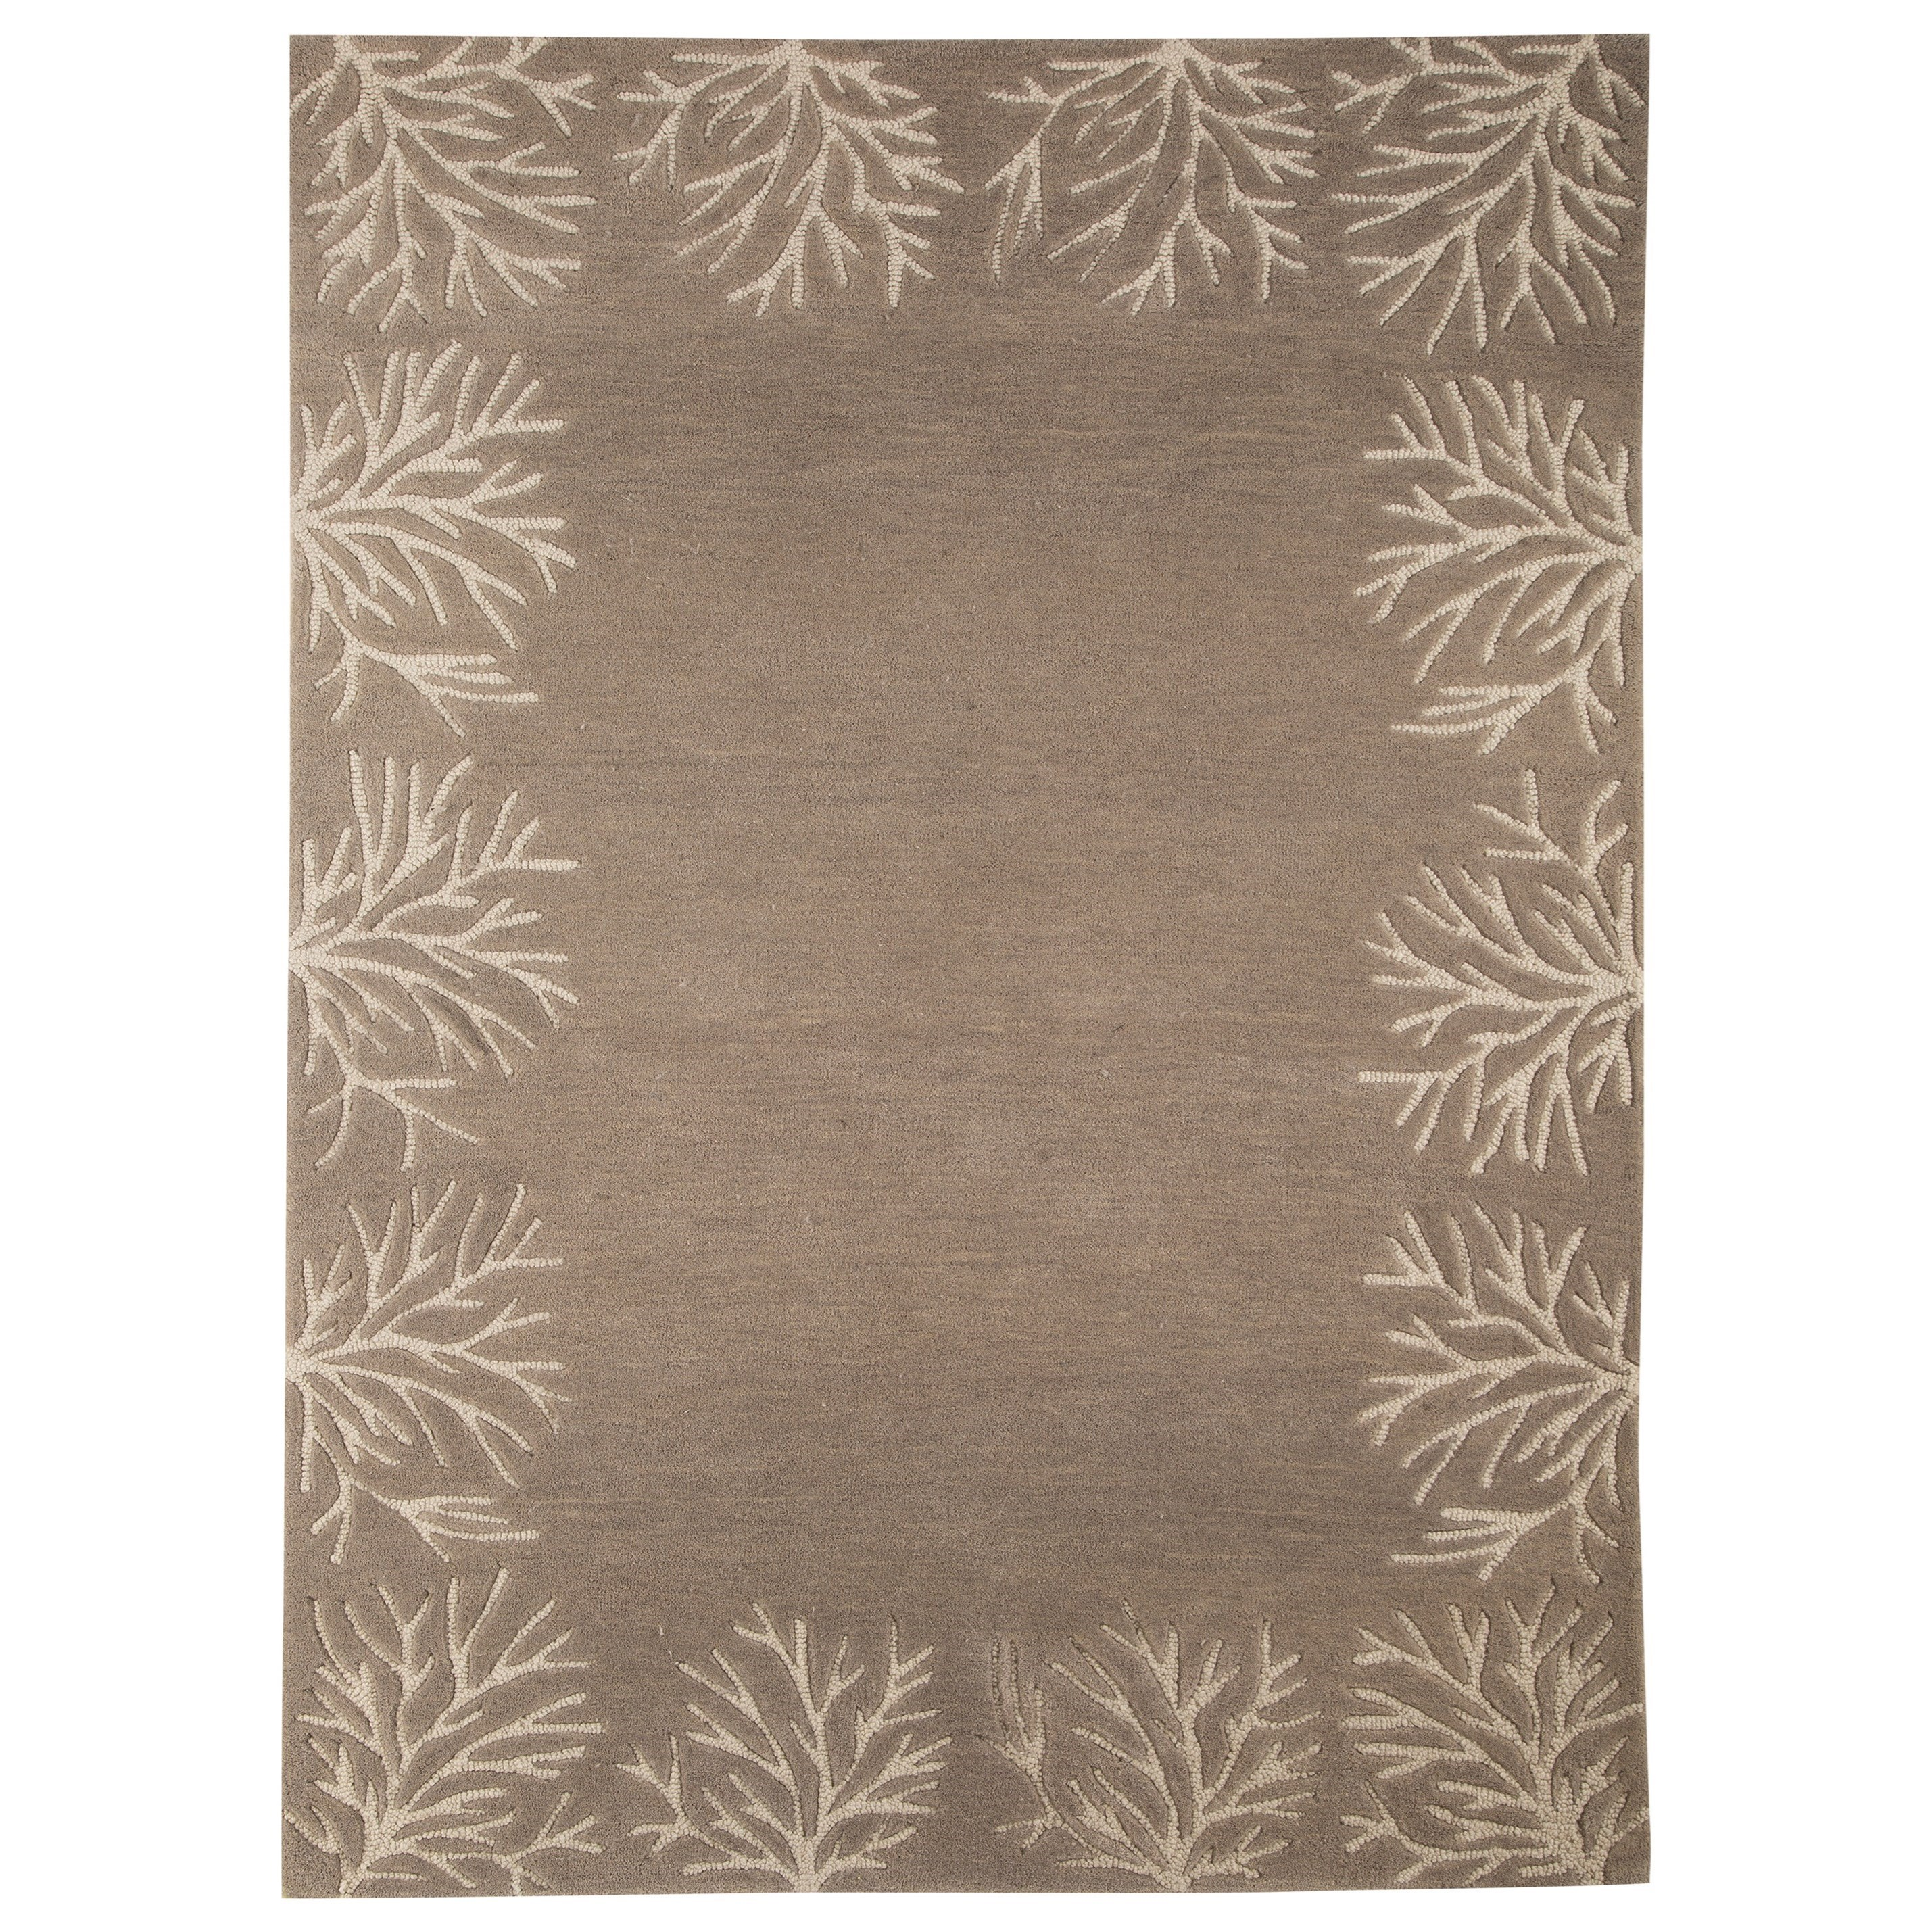 Signature Design by Ashley Transitional Area Rugs Kierin Brown Large Rug - Item Number: R400321